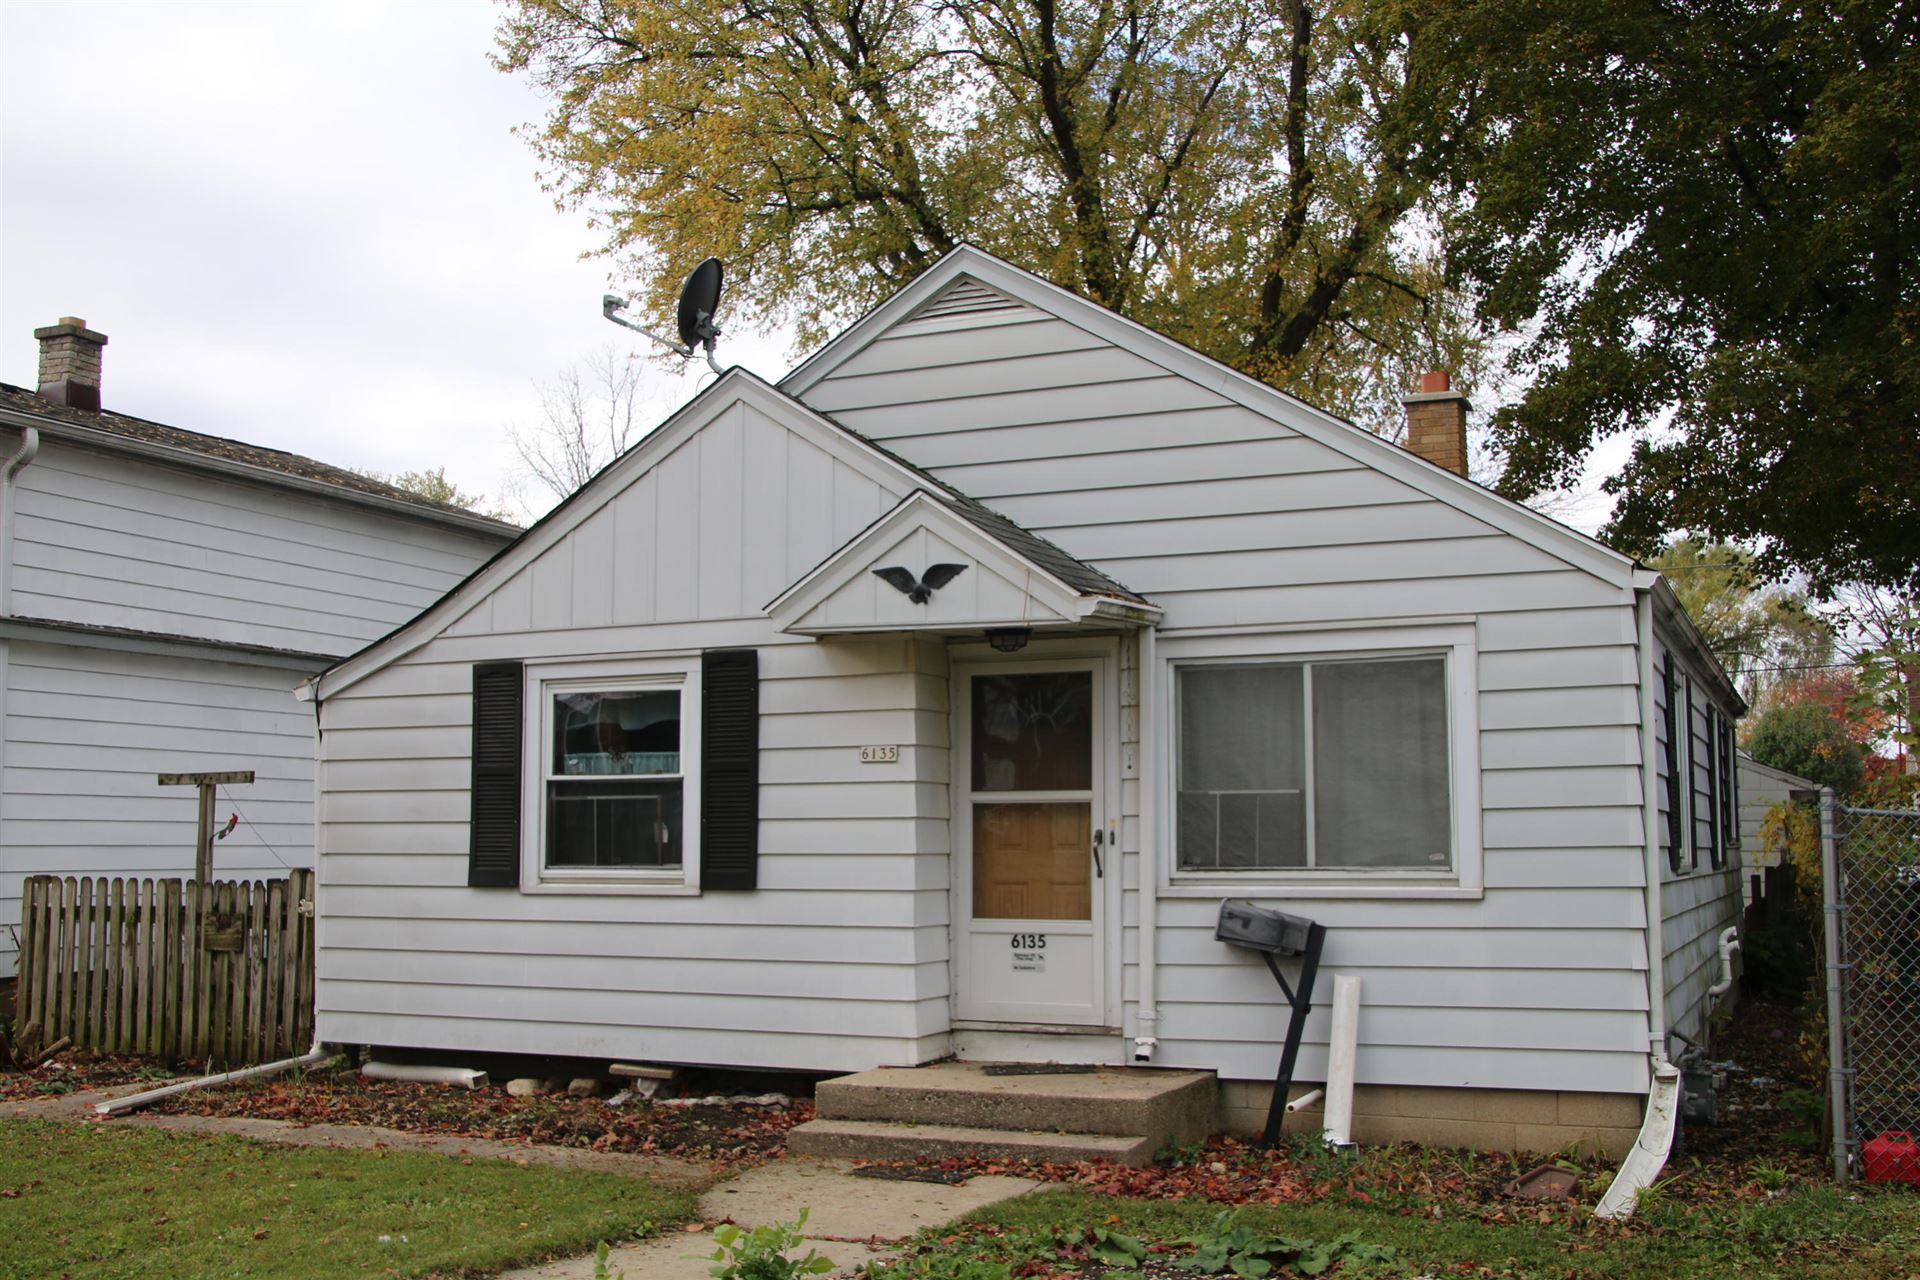 6135 N 36th St, Milwaukee, WI 53209 - #: 1716220